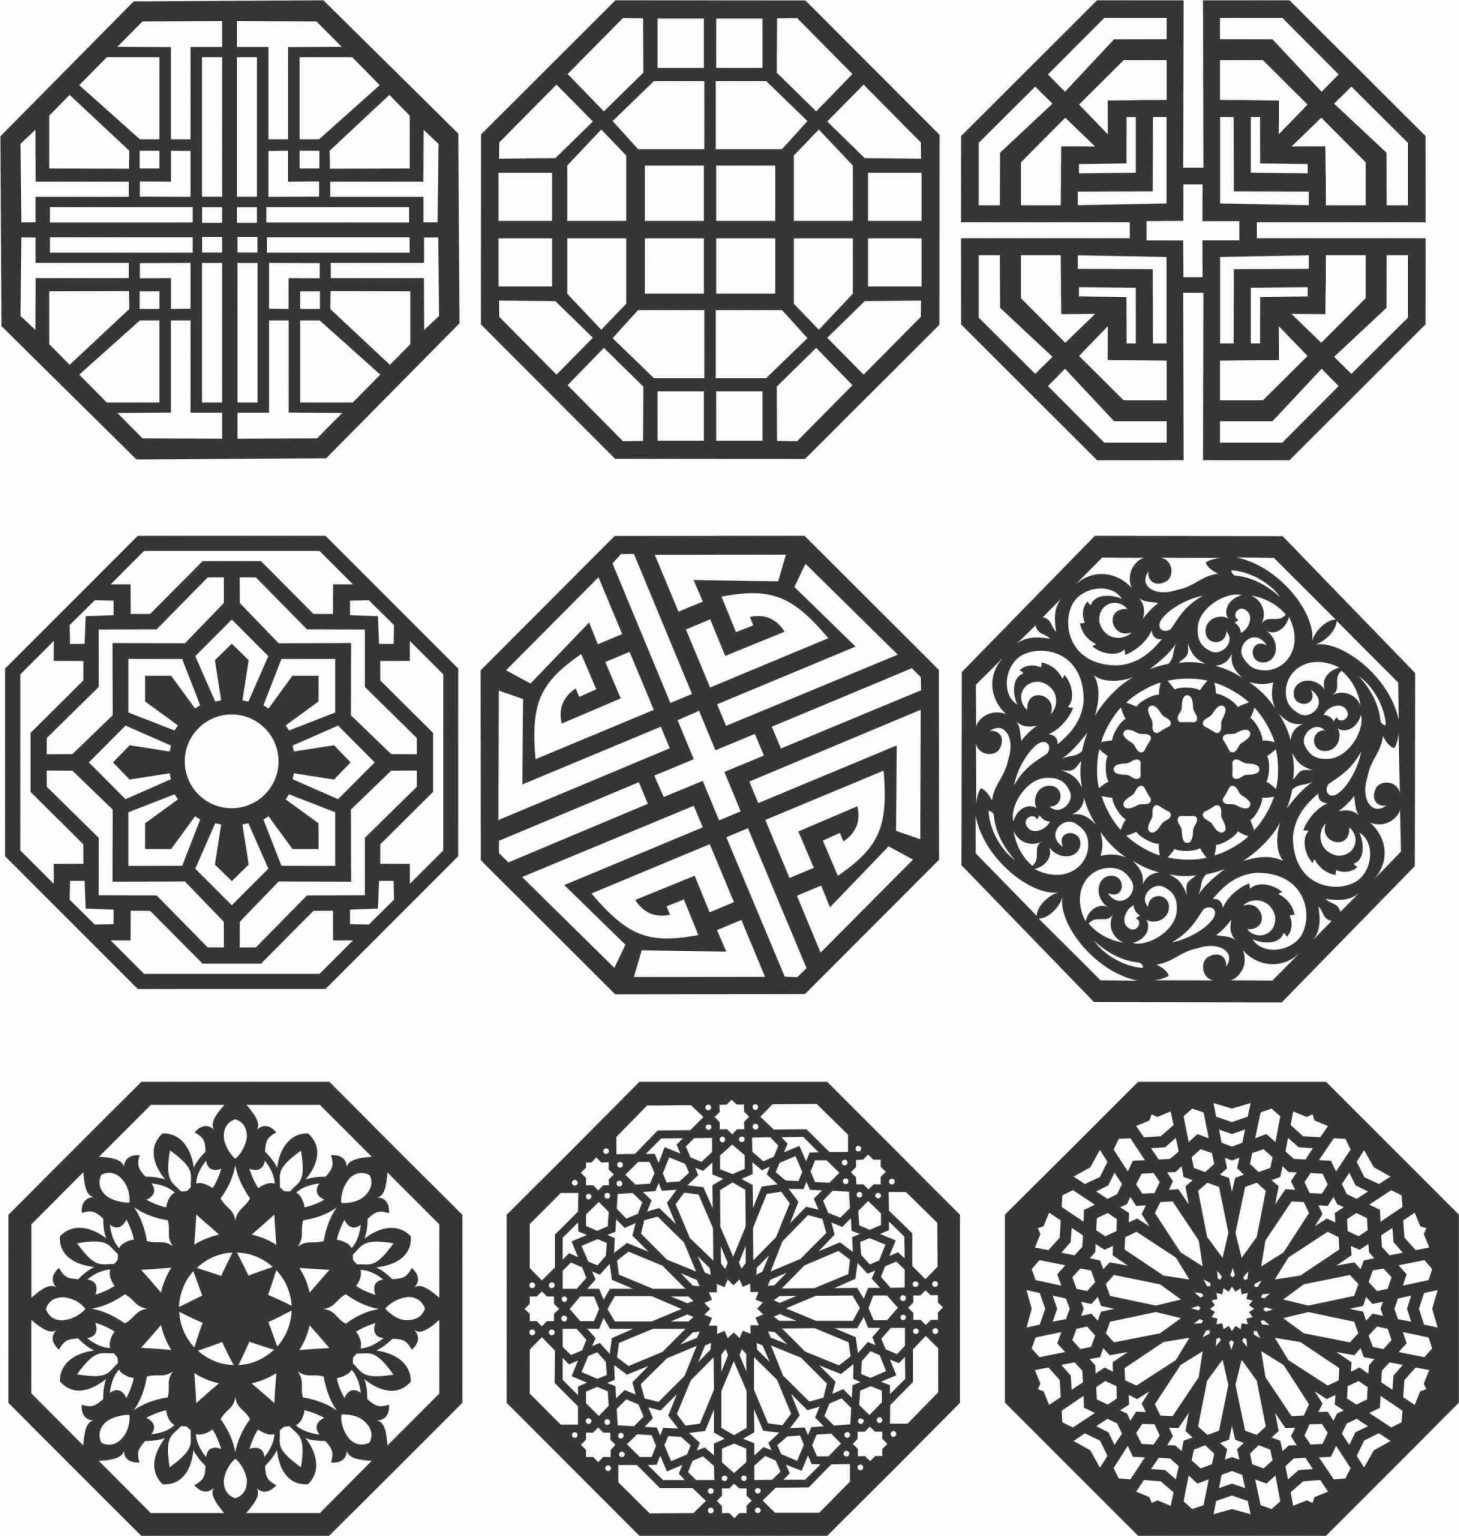 Floral Screen Patterns Design 144 Free DXF File